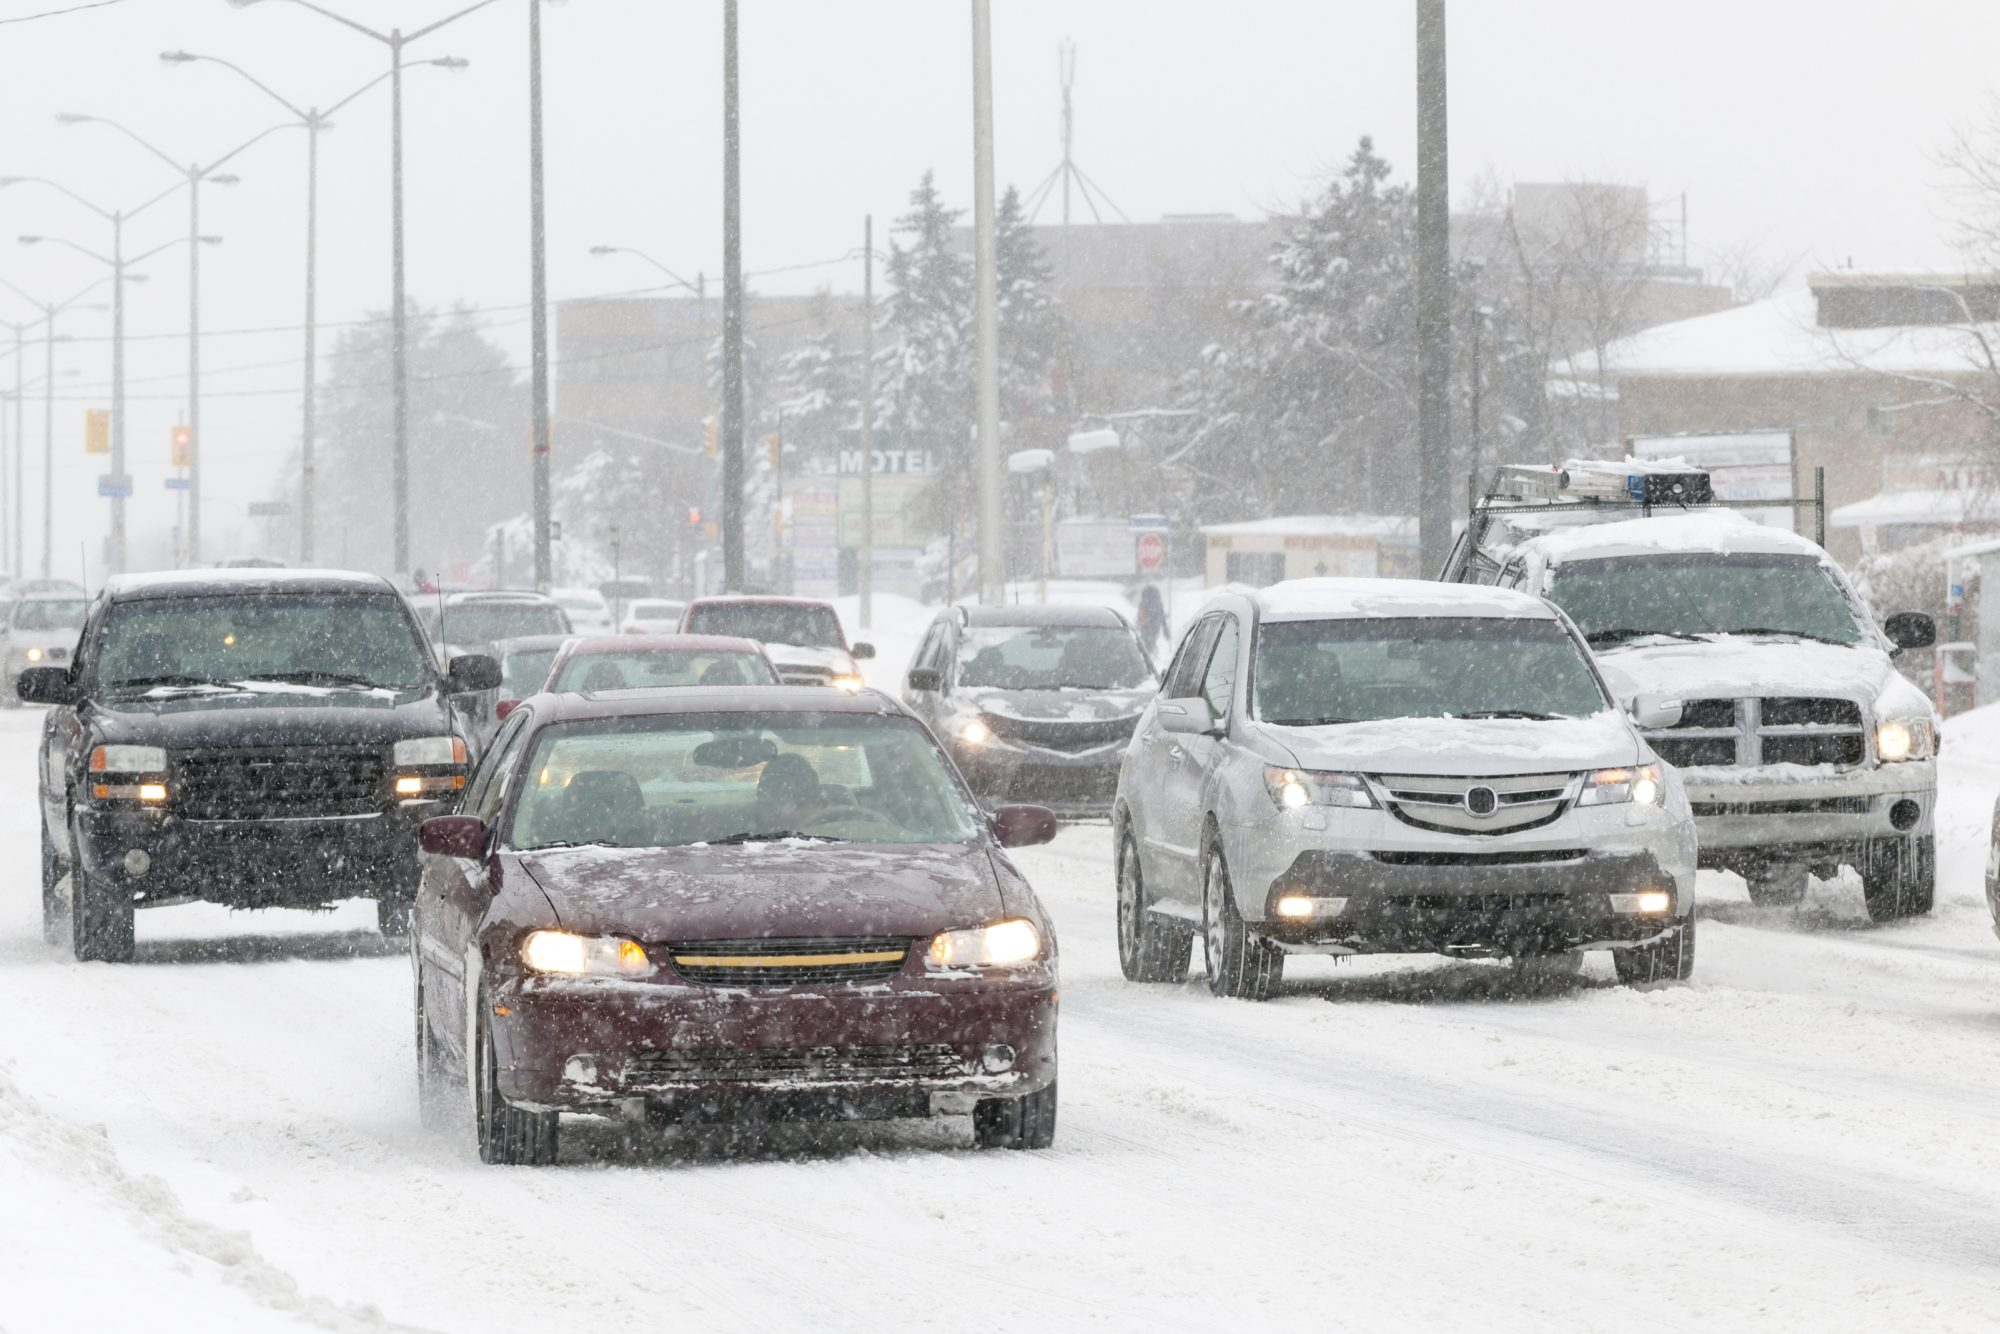 Brampton May Have Its First Major Snow Storm This Weekend